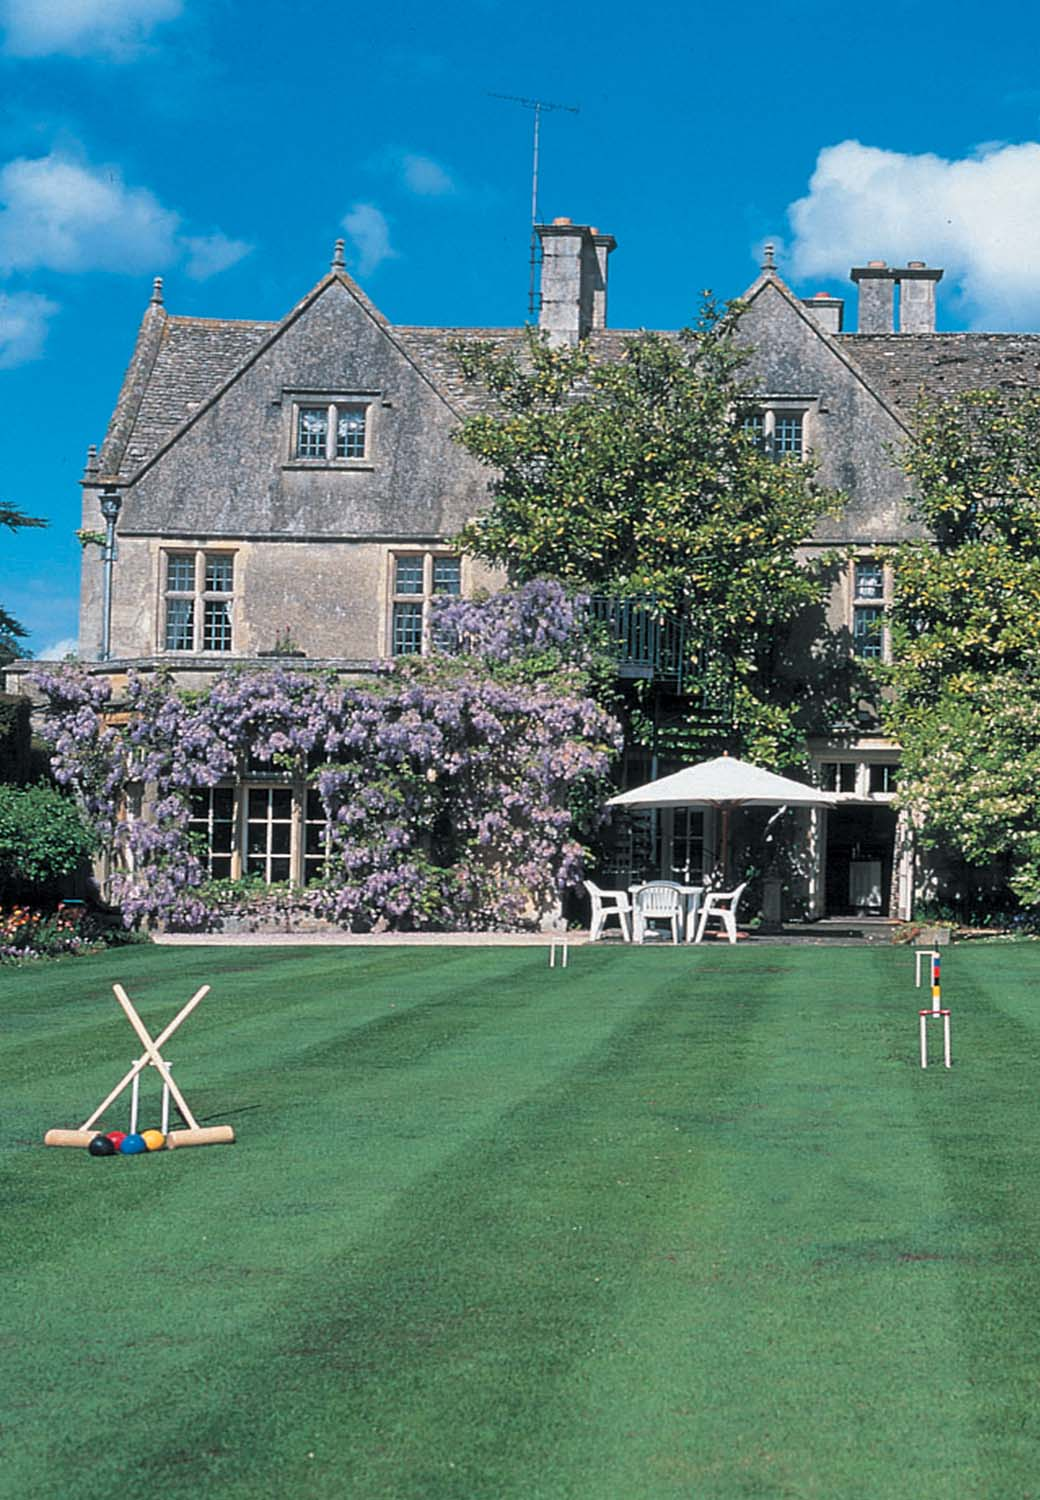 Corporate Team Days Cheltenham Croquet on lawn